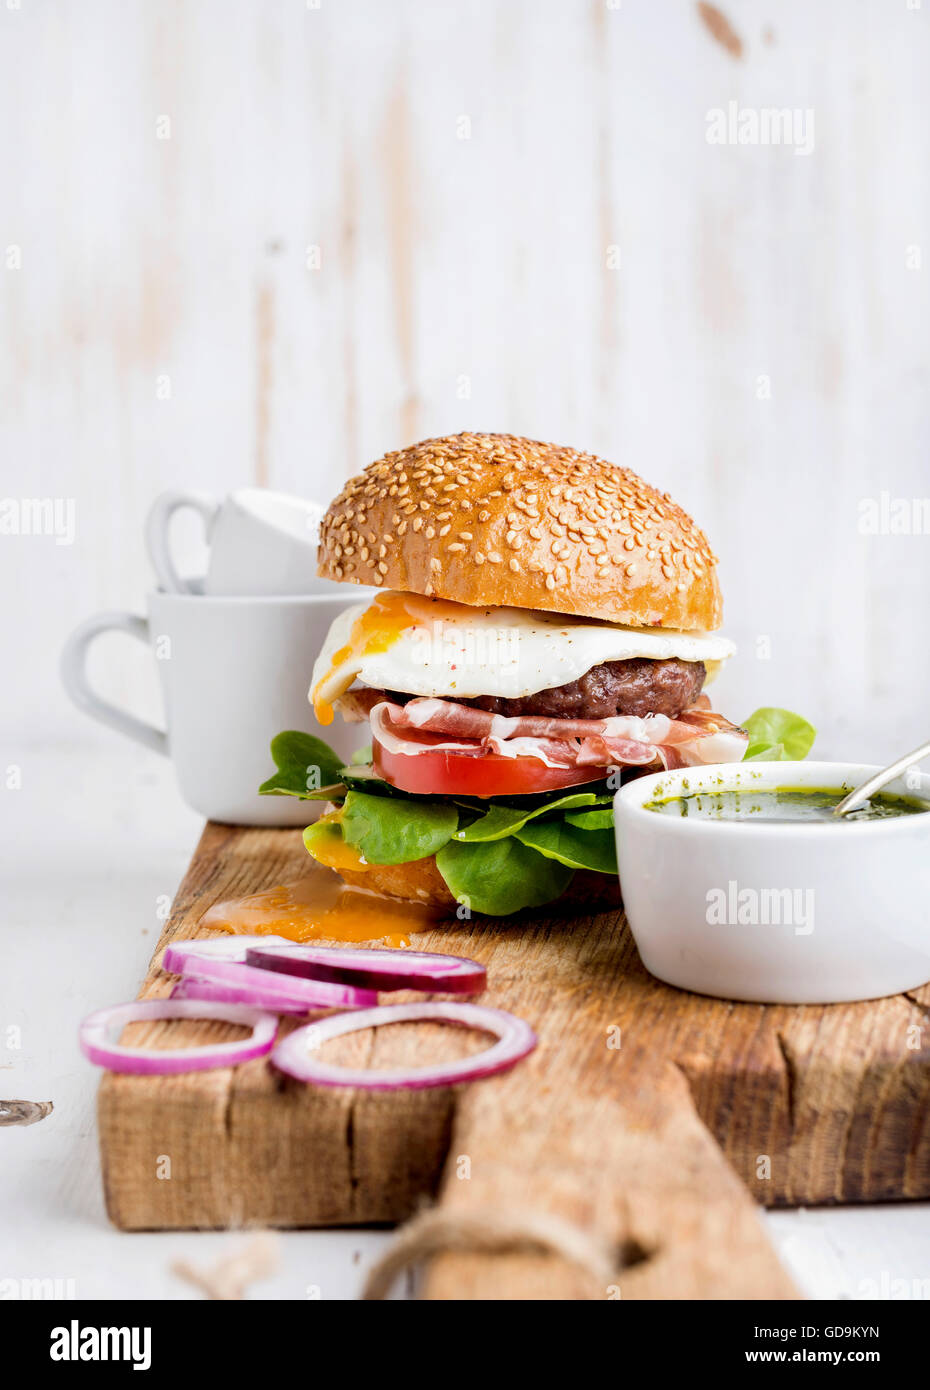 Fresh homemade burger with beef cutlet, egg, prosciutto and vegetables on wooden serving board with onion rings - Stock Image